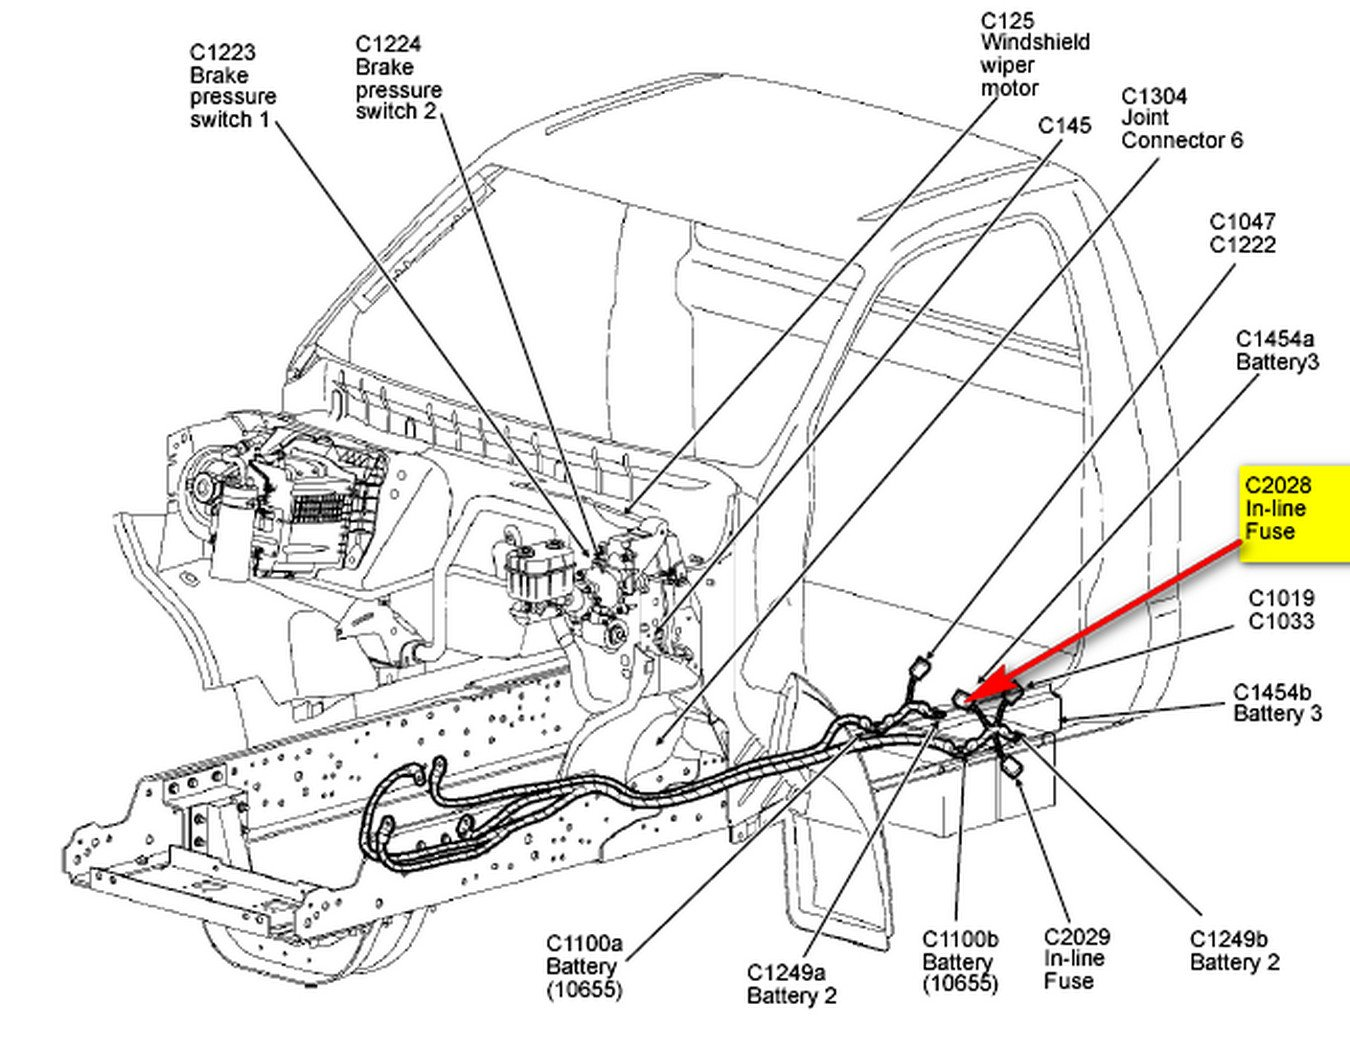 we have a ford f650 2008 model with a cat engine c7 we have no 2004 F650 Belt Diagram  2005 F650 Cab Fuse Diagram 2004 F650 Blower Motor 2004 ford f650 fuse box diagram